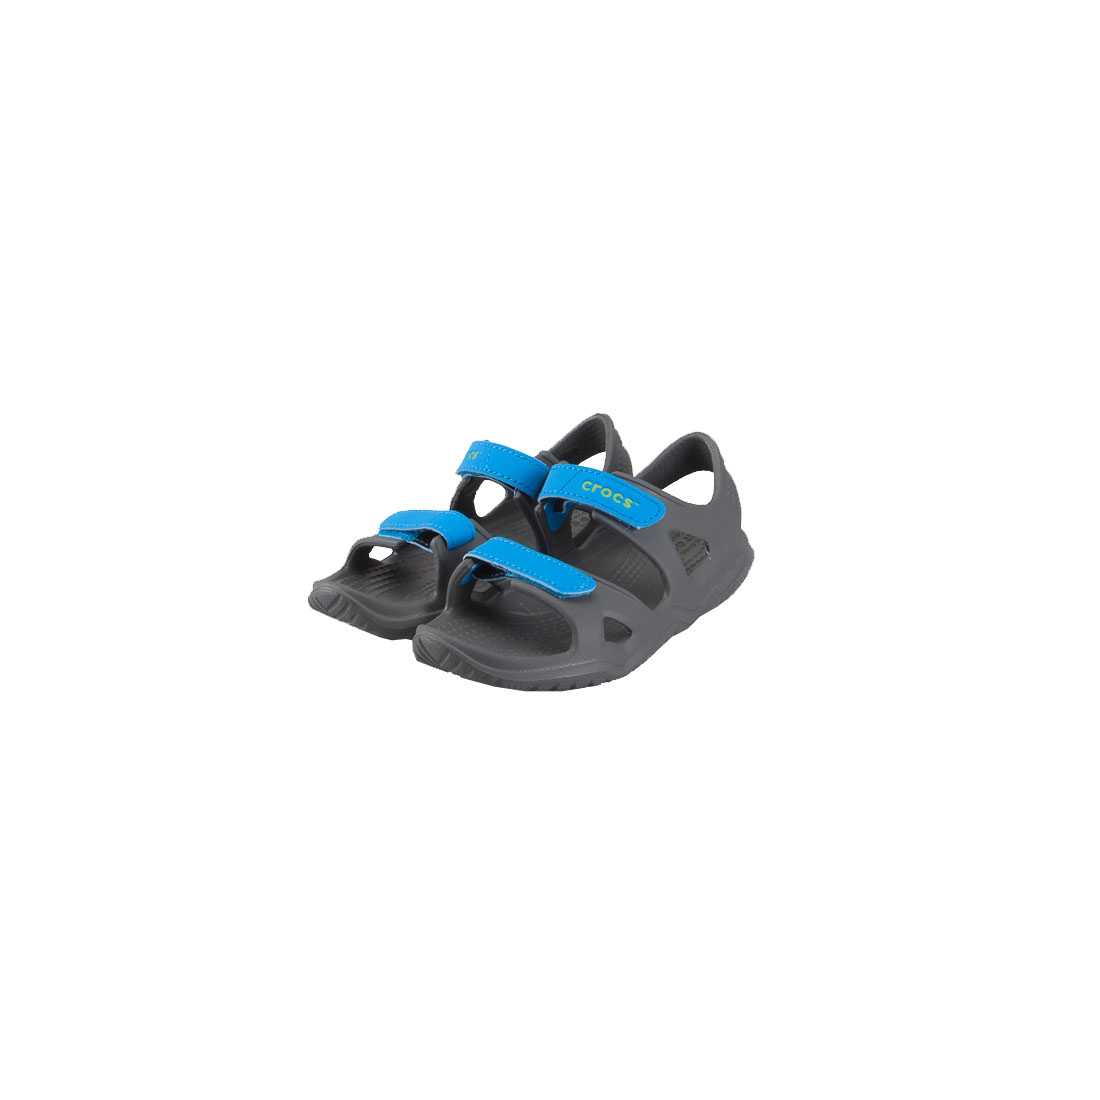 a853431377b CROCS 204988-01O SWIFTWATER RIVER SANDAL KIDS SLATE GREY OCEAN RELAXED FIT